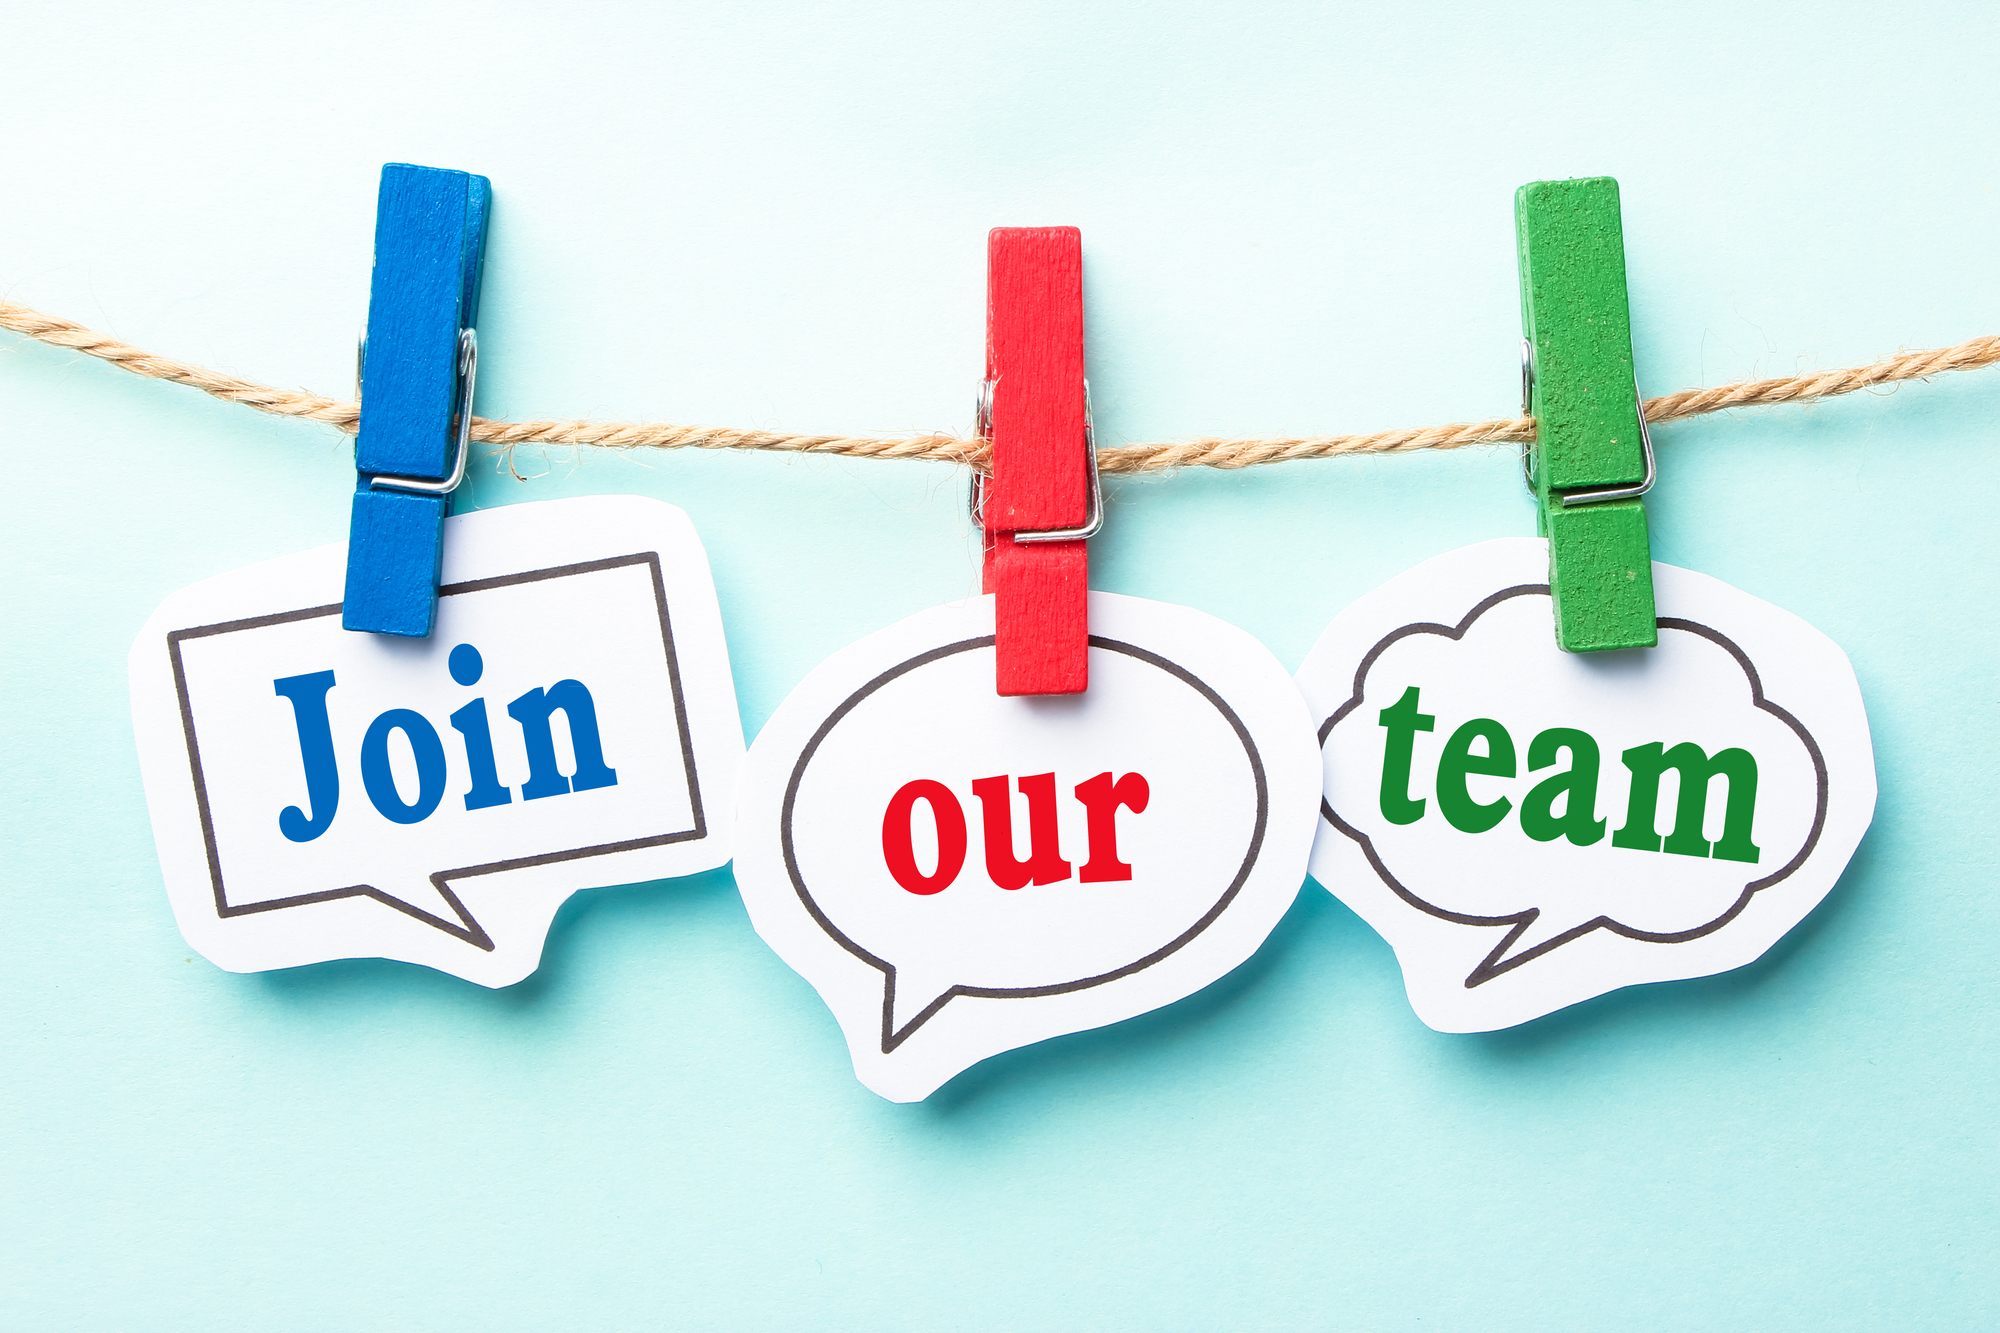 Join Our Team On Clothes Pins In Colors For Apartment Staffing Companies Looking To Hire